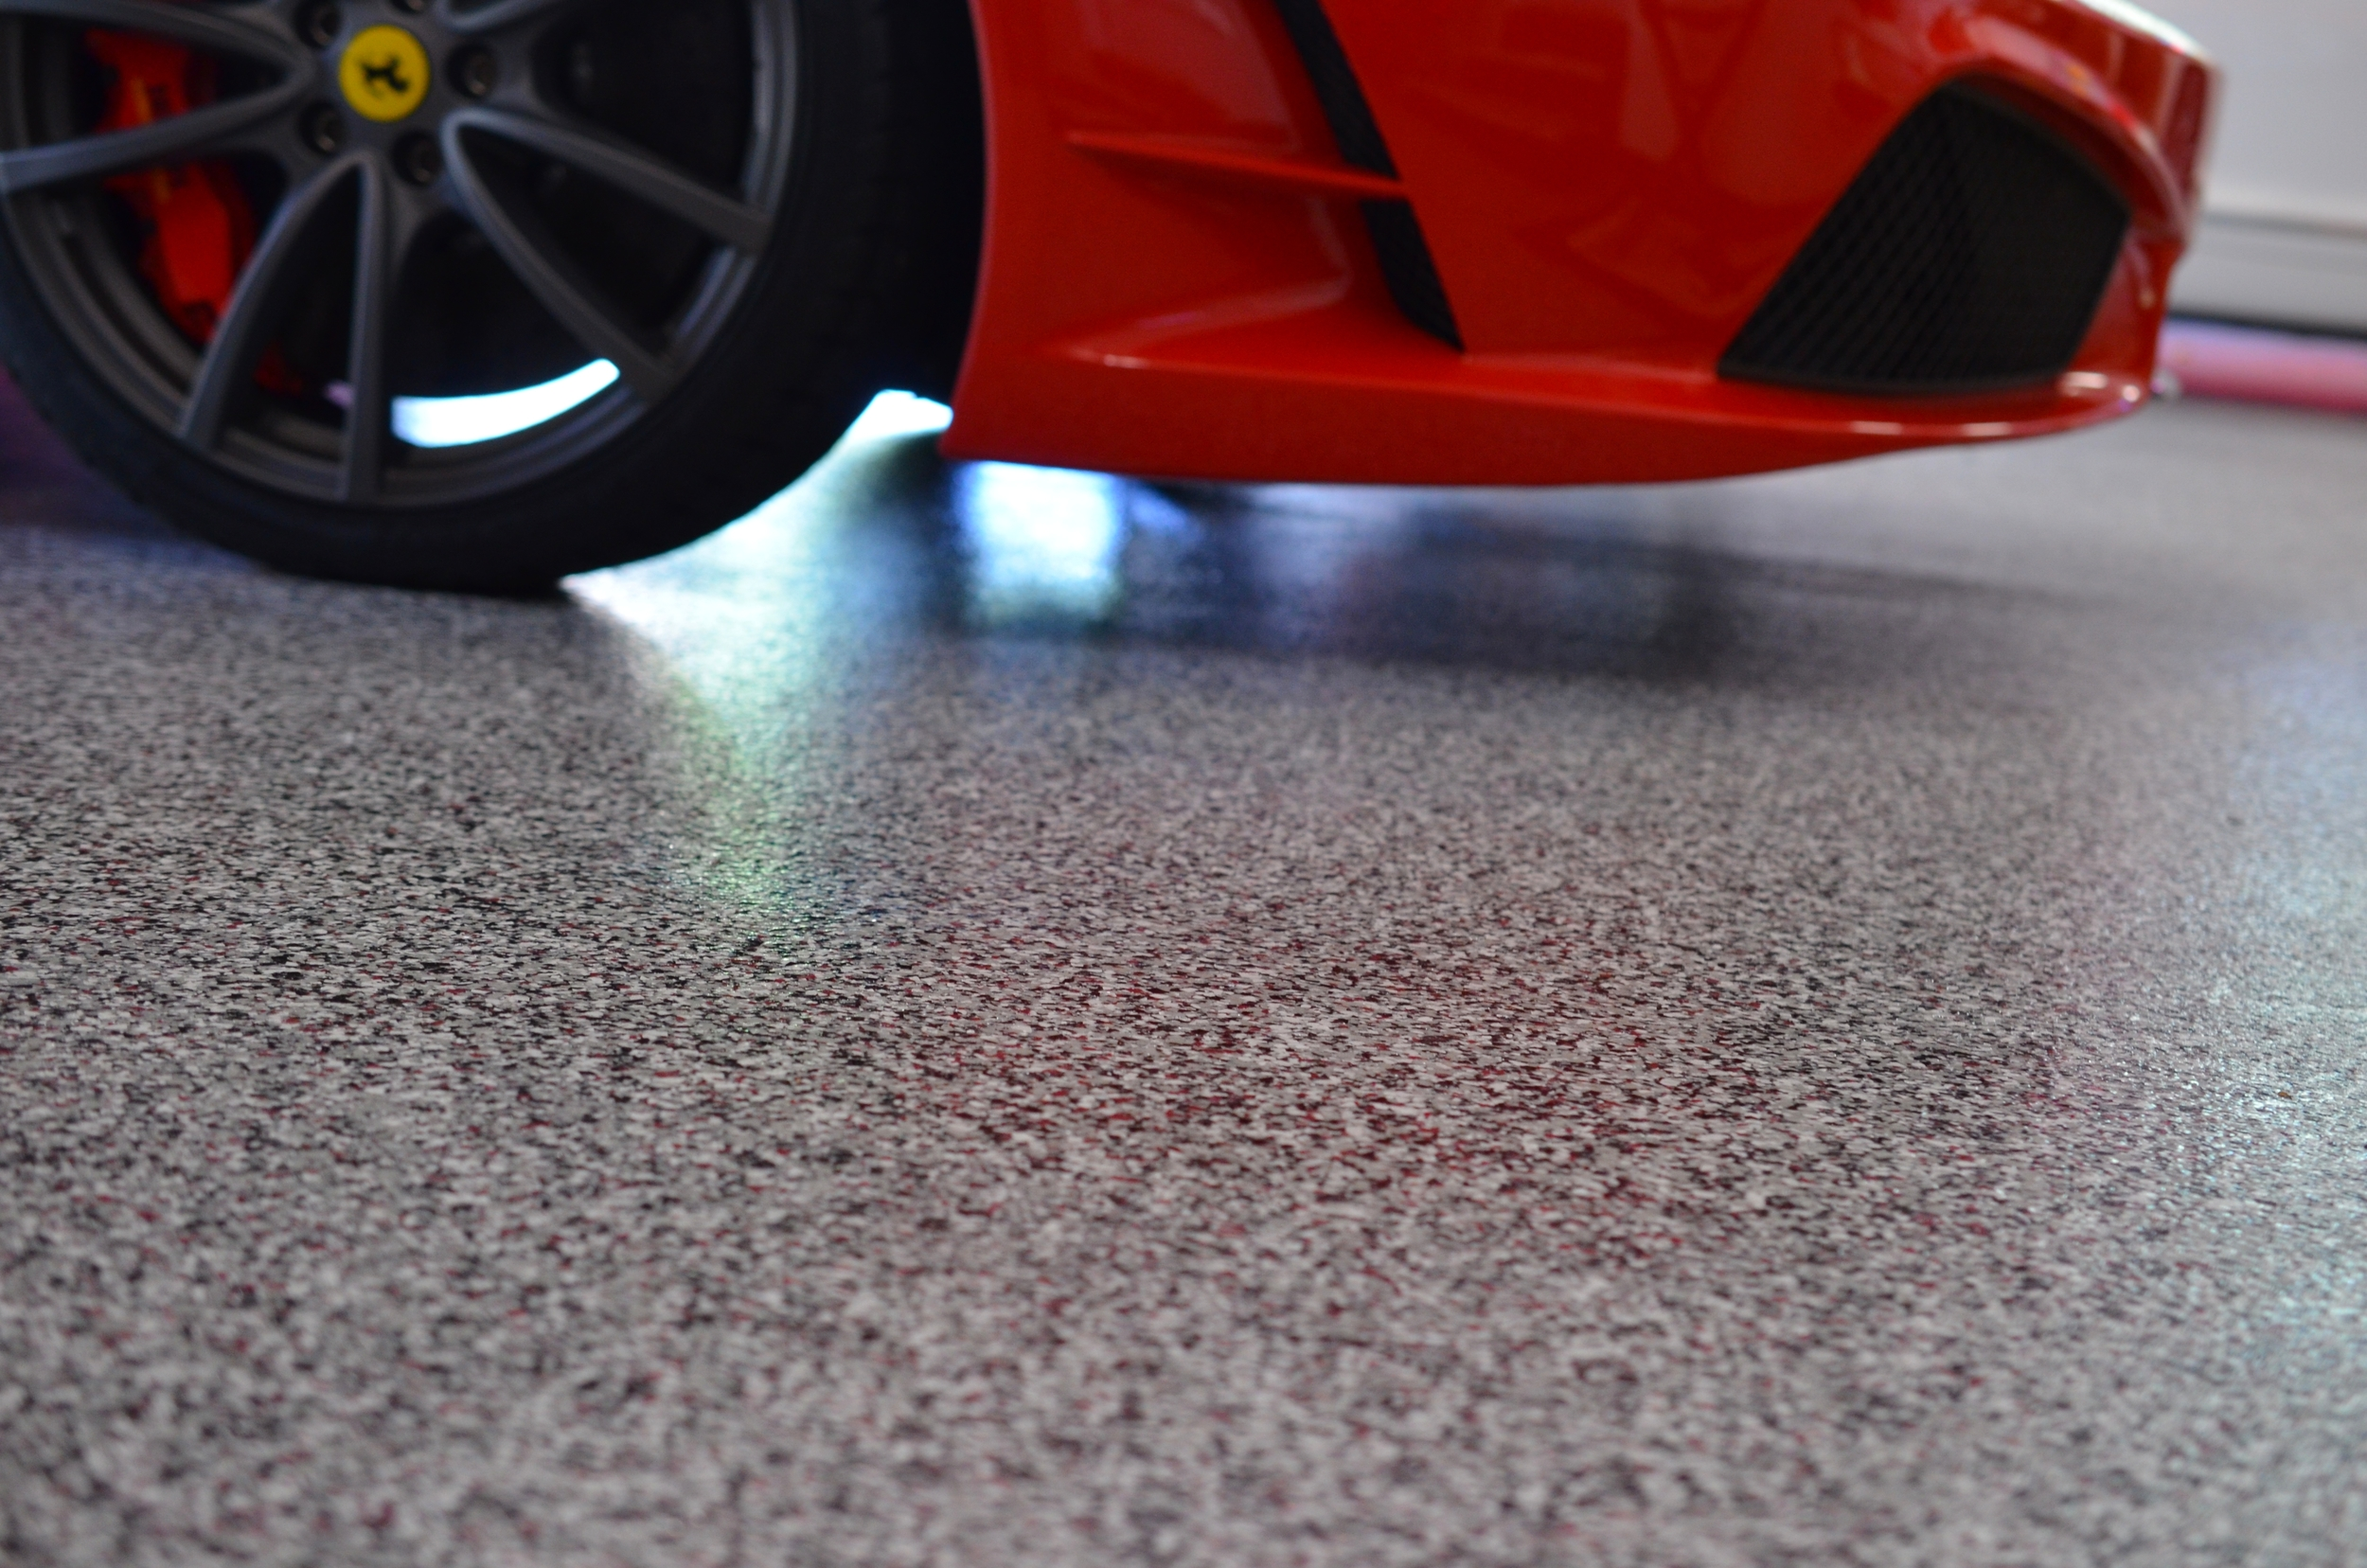 Epoxy Garage Floor Coating Solutions For Your Home.